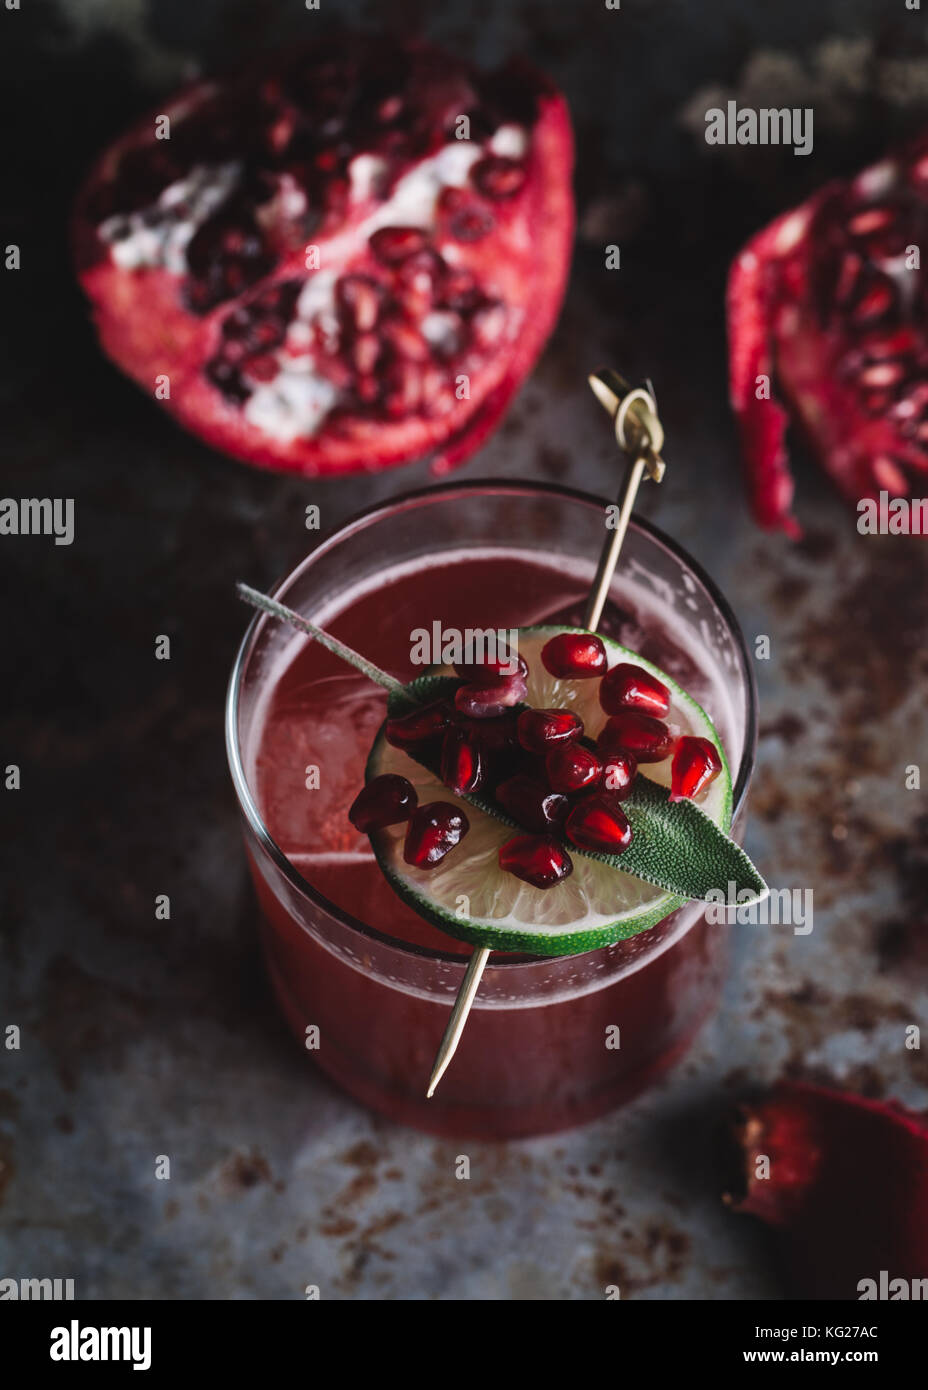 Alcoholic cocktail garnished with pomegranate seeds on dark moody background Stock Photo